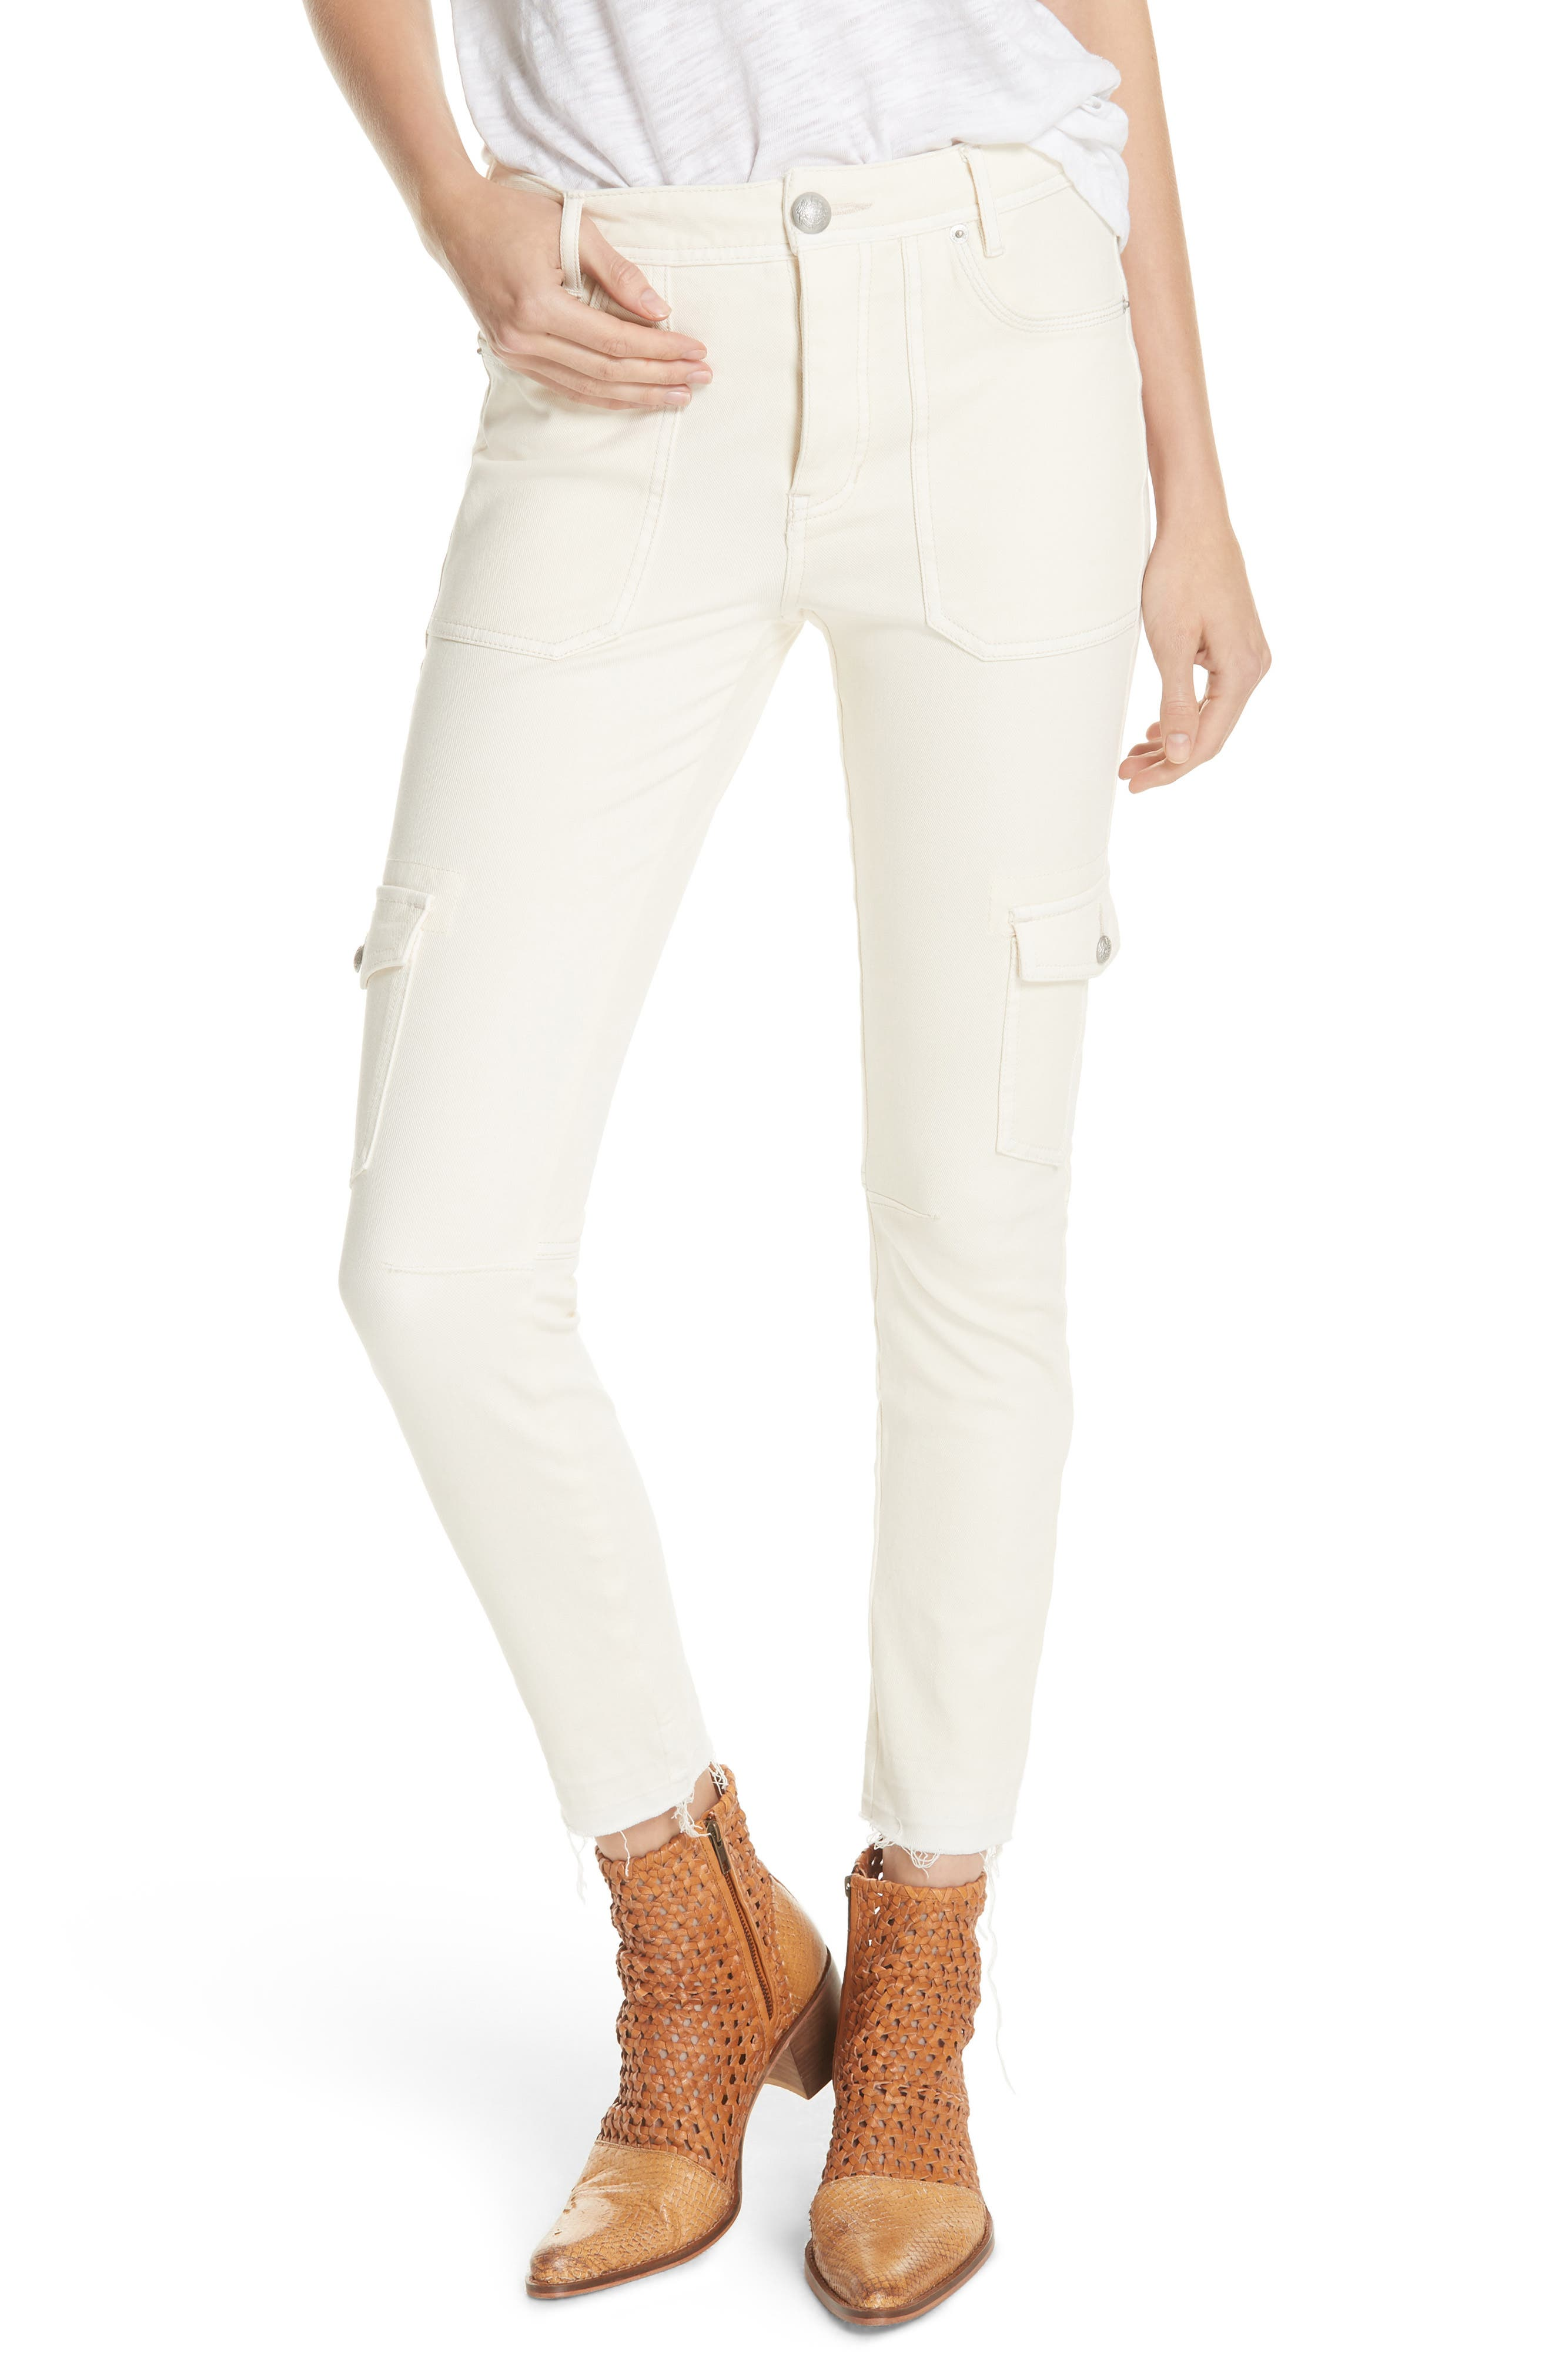 FREE PEOPLE,                             Utility Skinny Jeans,                             Main thumbnail 1, color,                             252